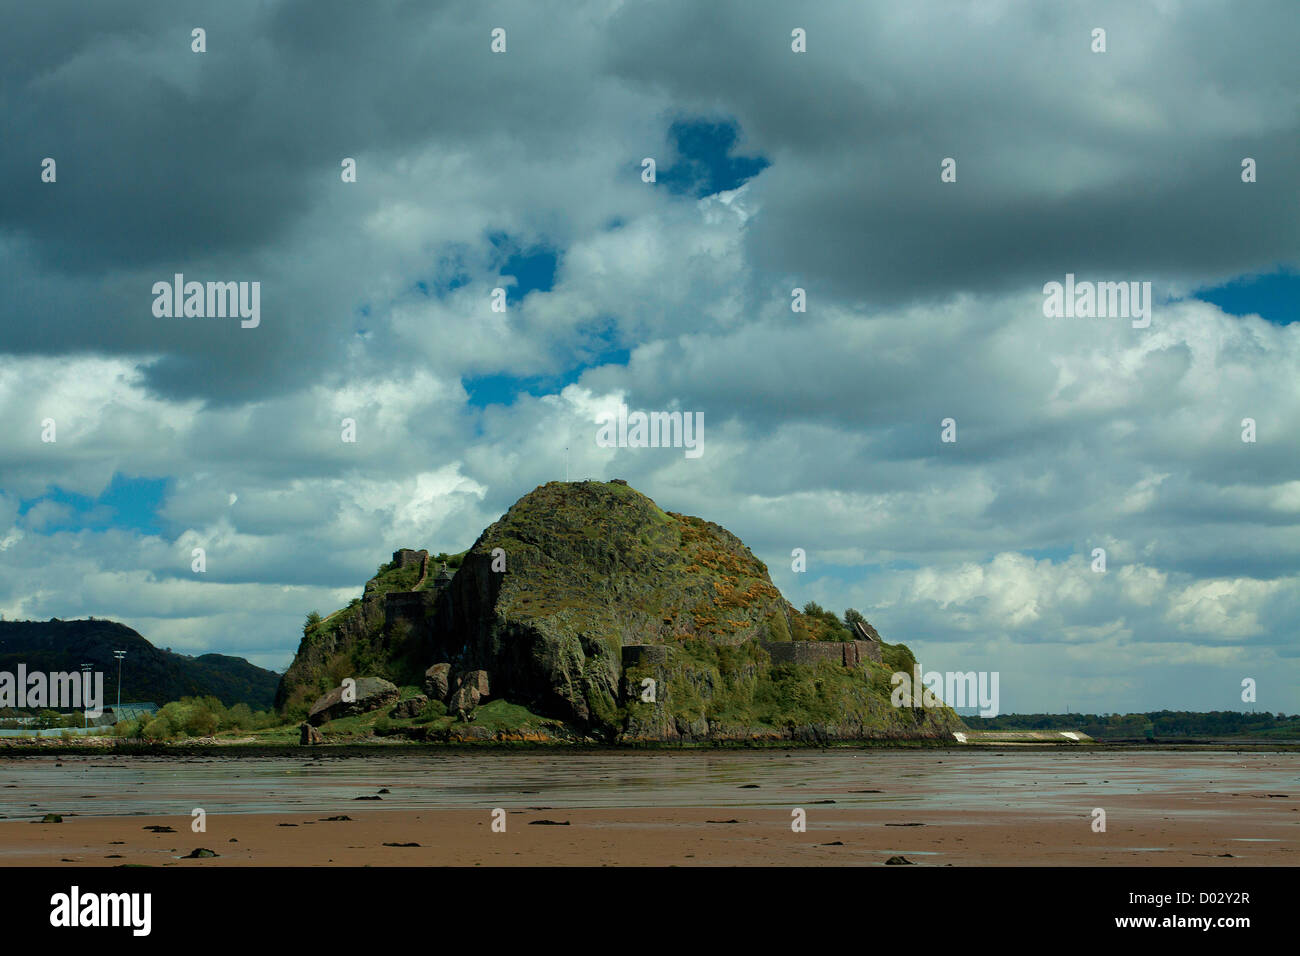 Dumbarton Rock and the River Clyde from Levengrove Park, Dumbarton - Stock Image